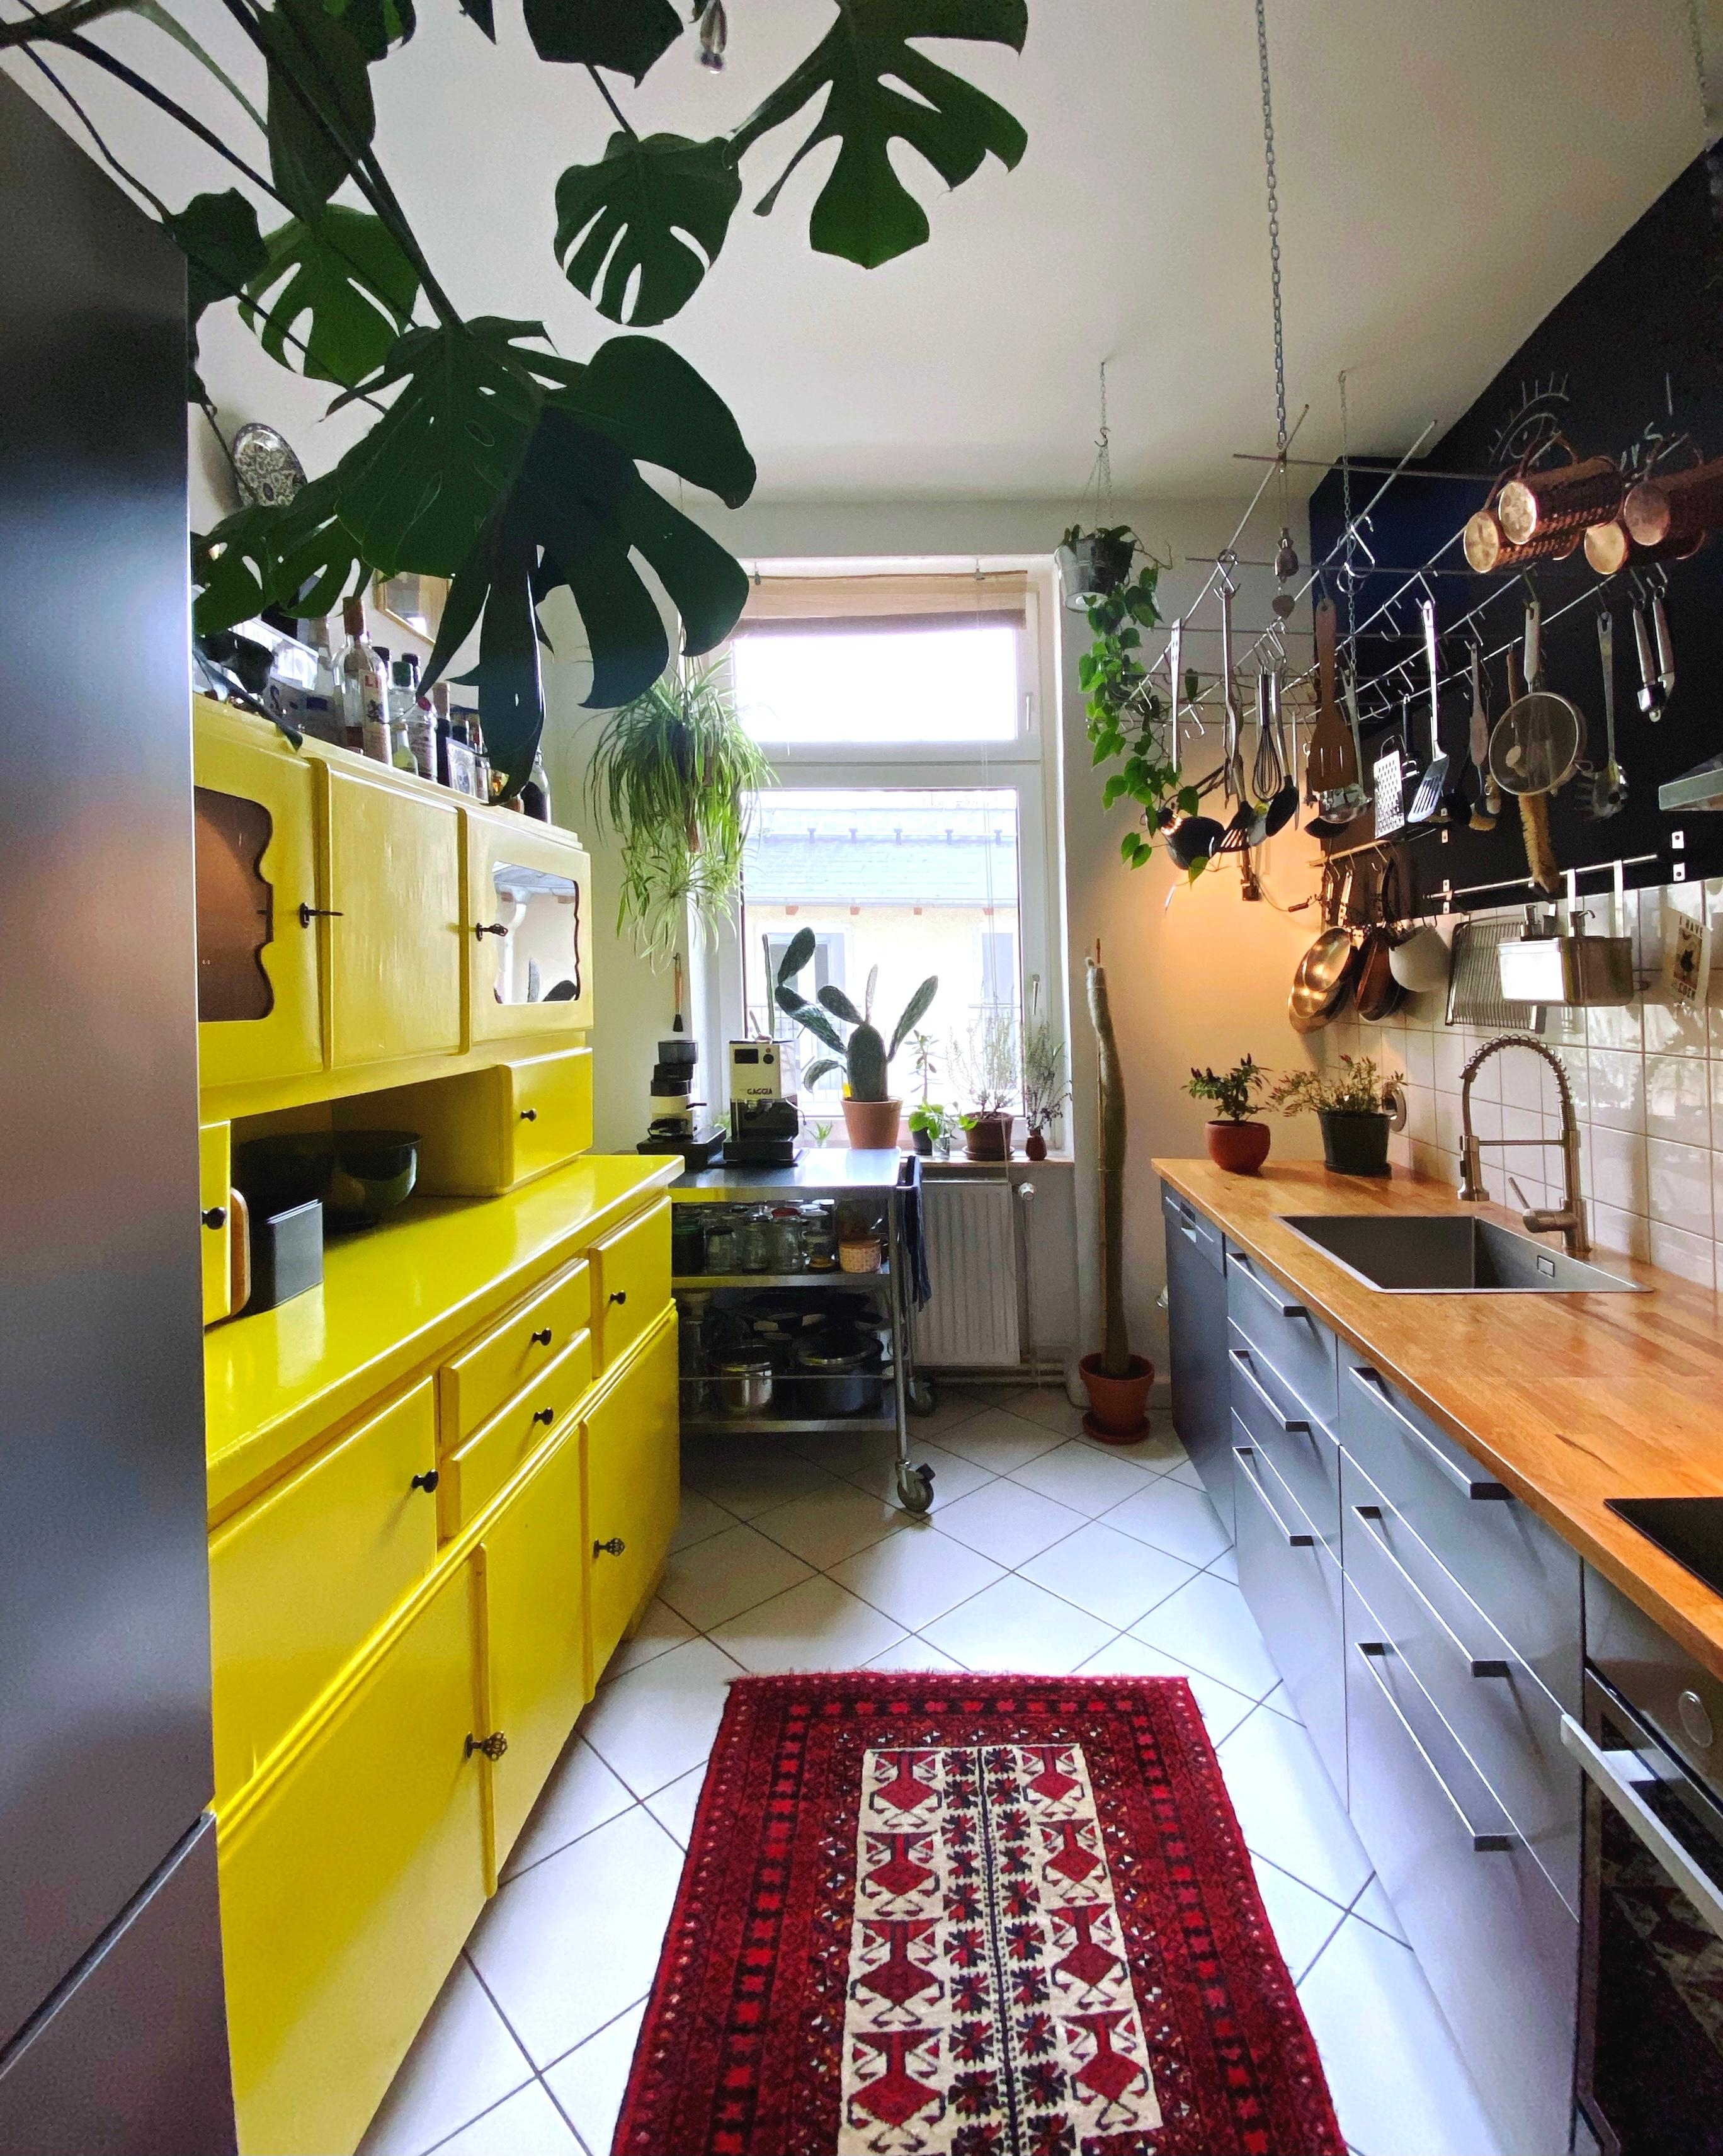 #kitchen #küche #plants #urbanjungle